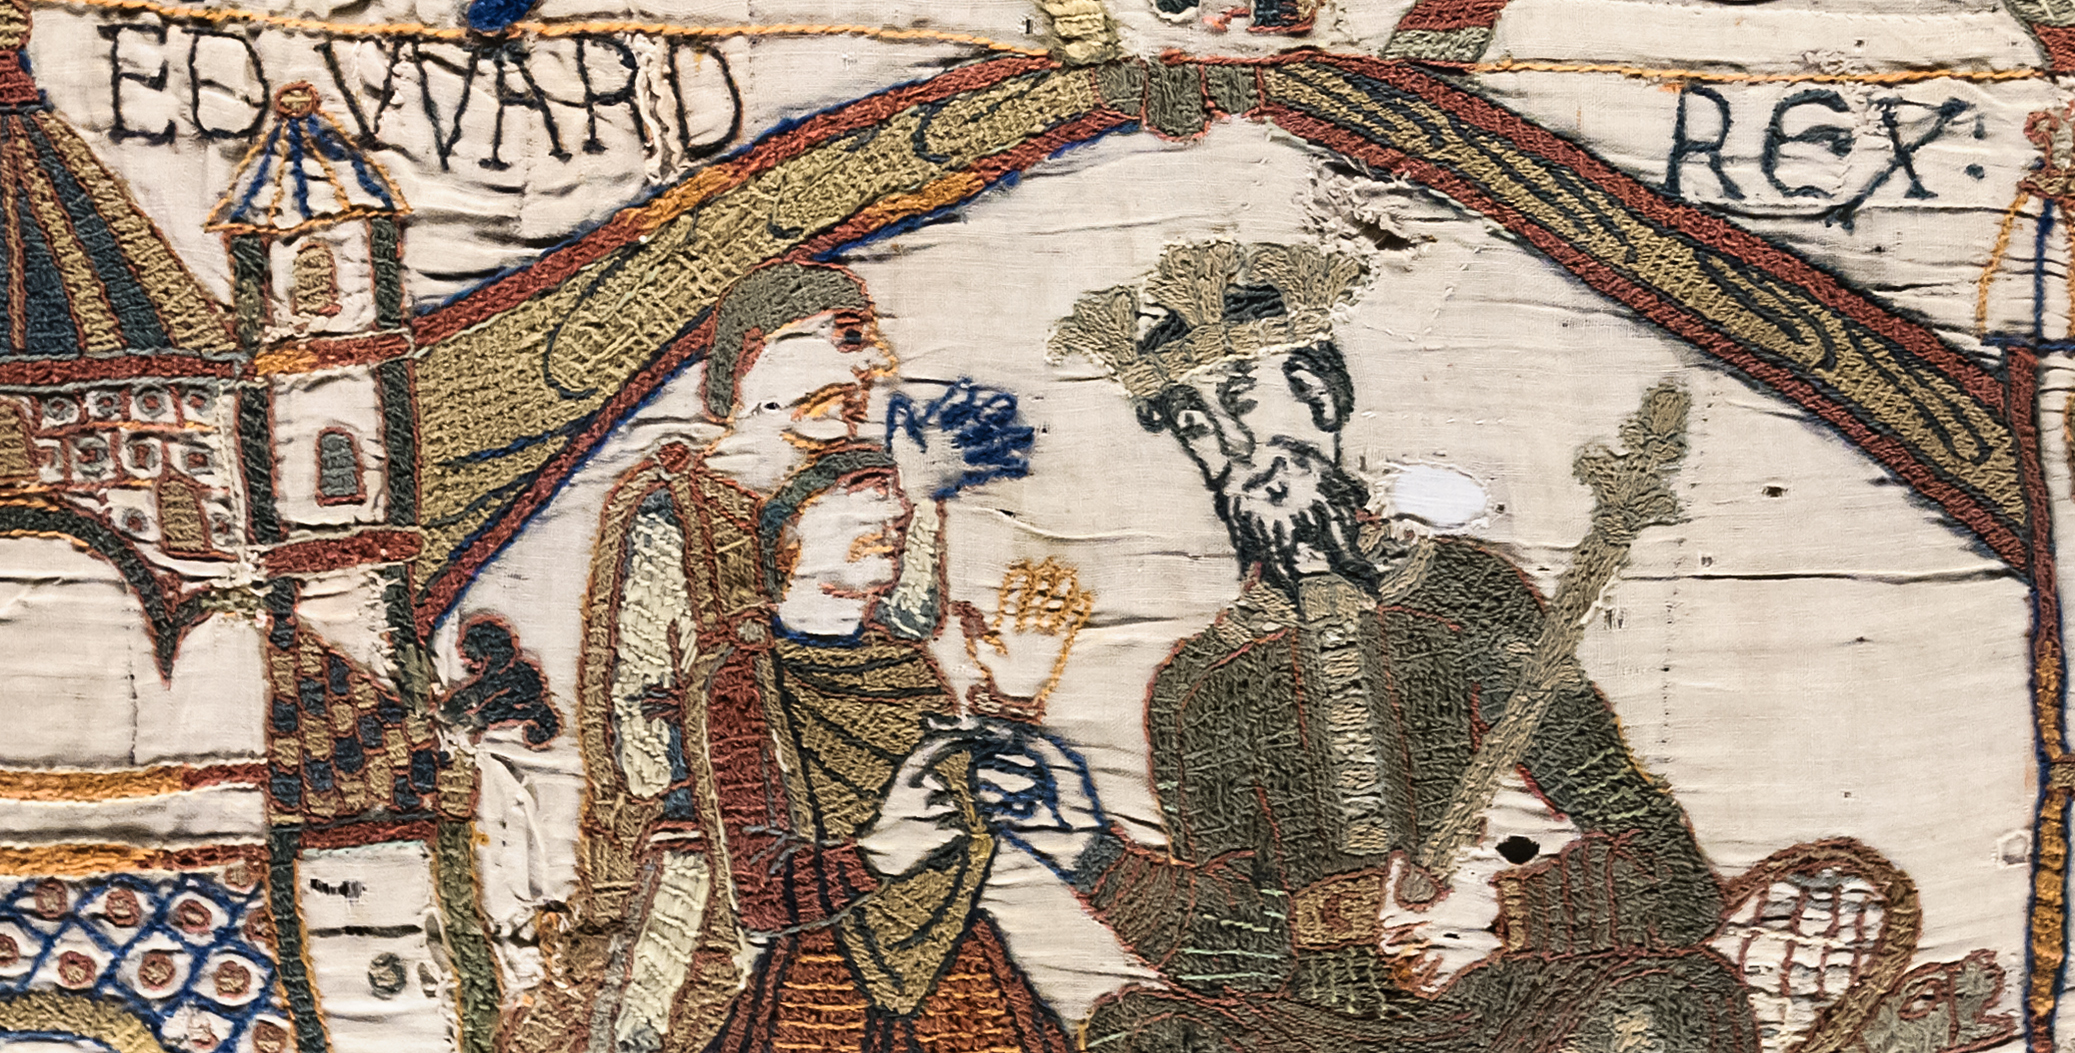 Emergence of the Common Law, the Anglo-Saxon Dooms, 601-1020 AD: The Dooms of the Kingdom of Wessex, Part 3